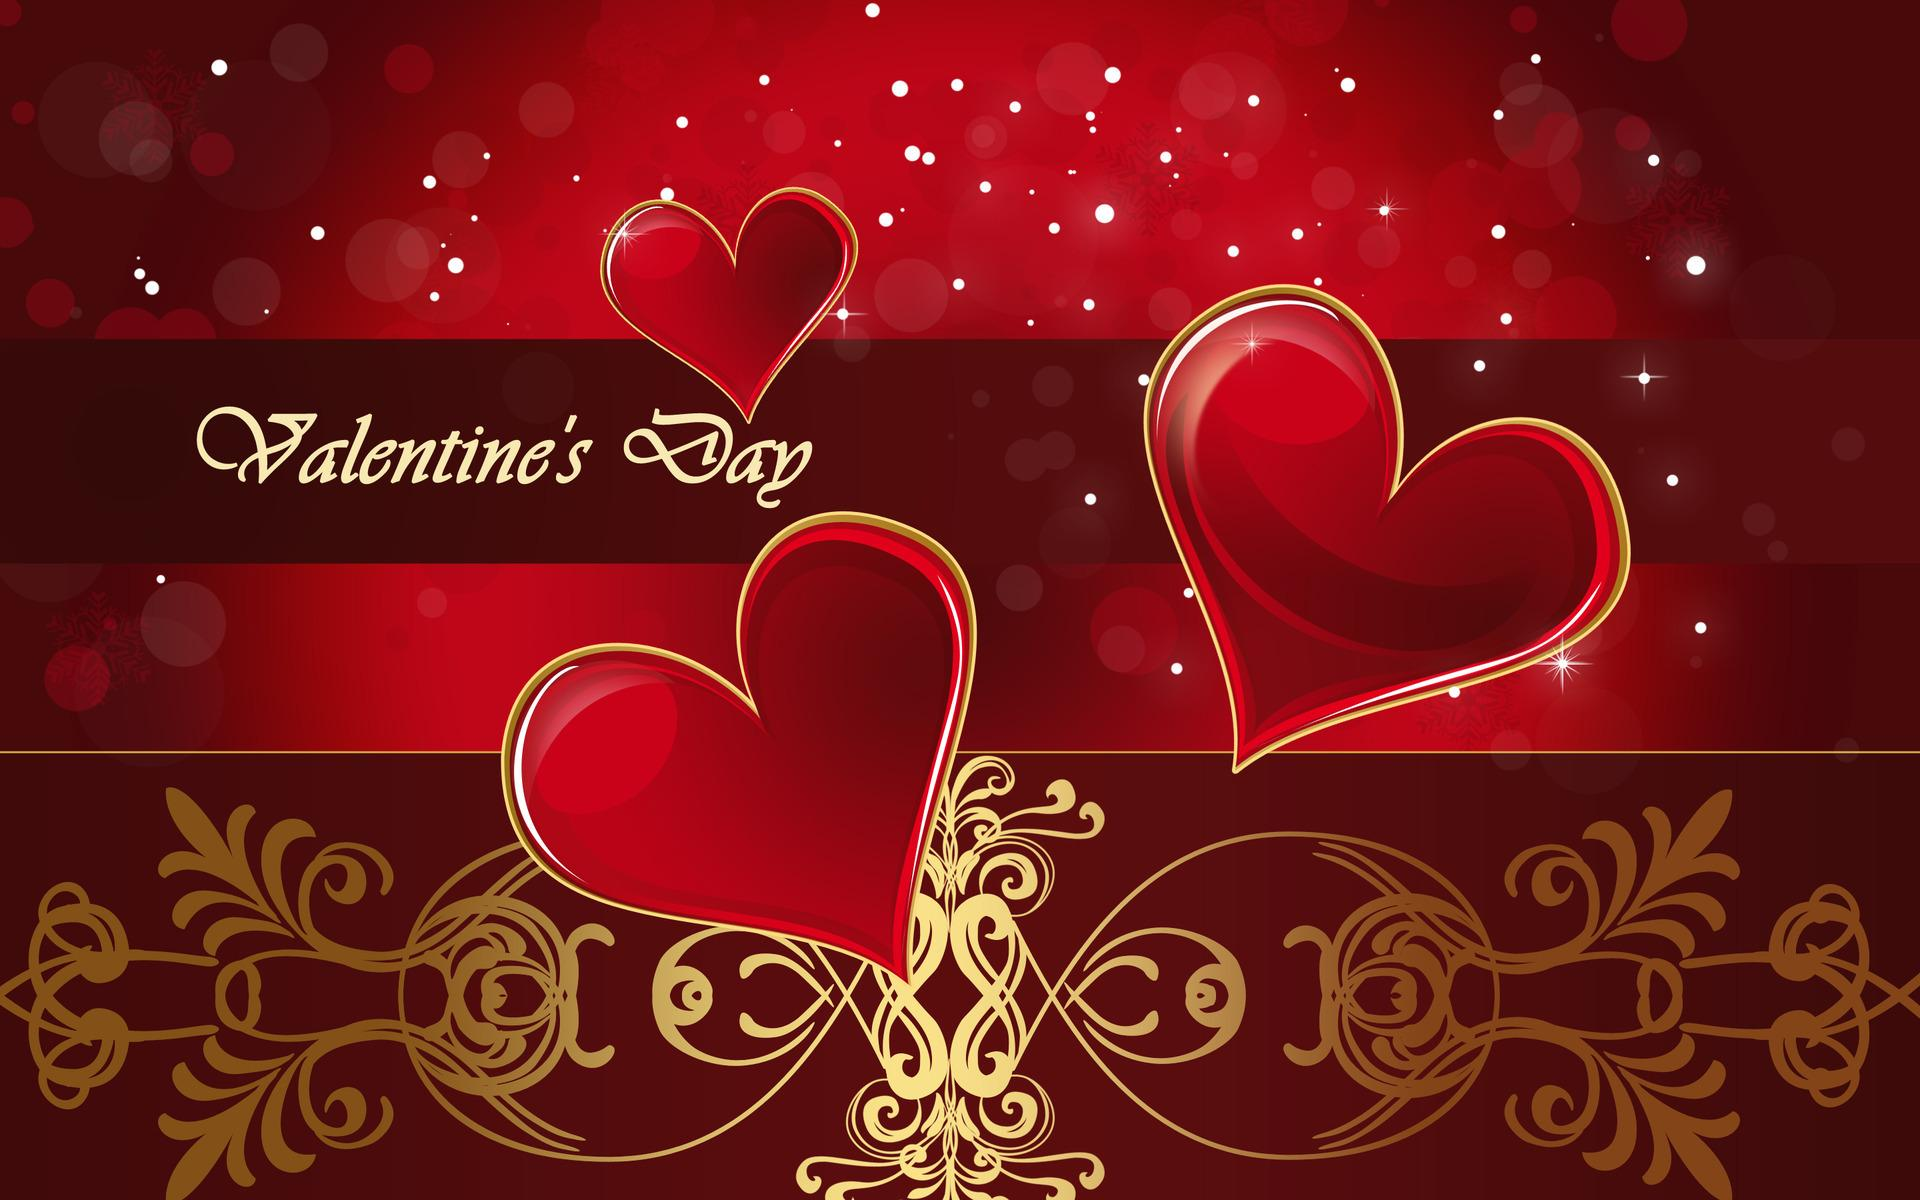 happy valentines day love hearts 3d desktop wallpaper: desktop hd